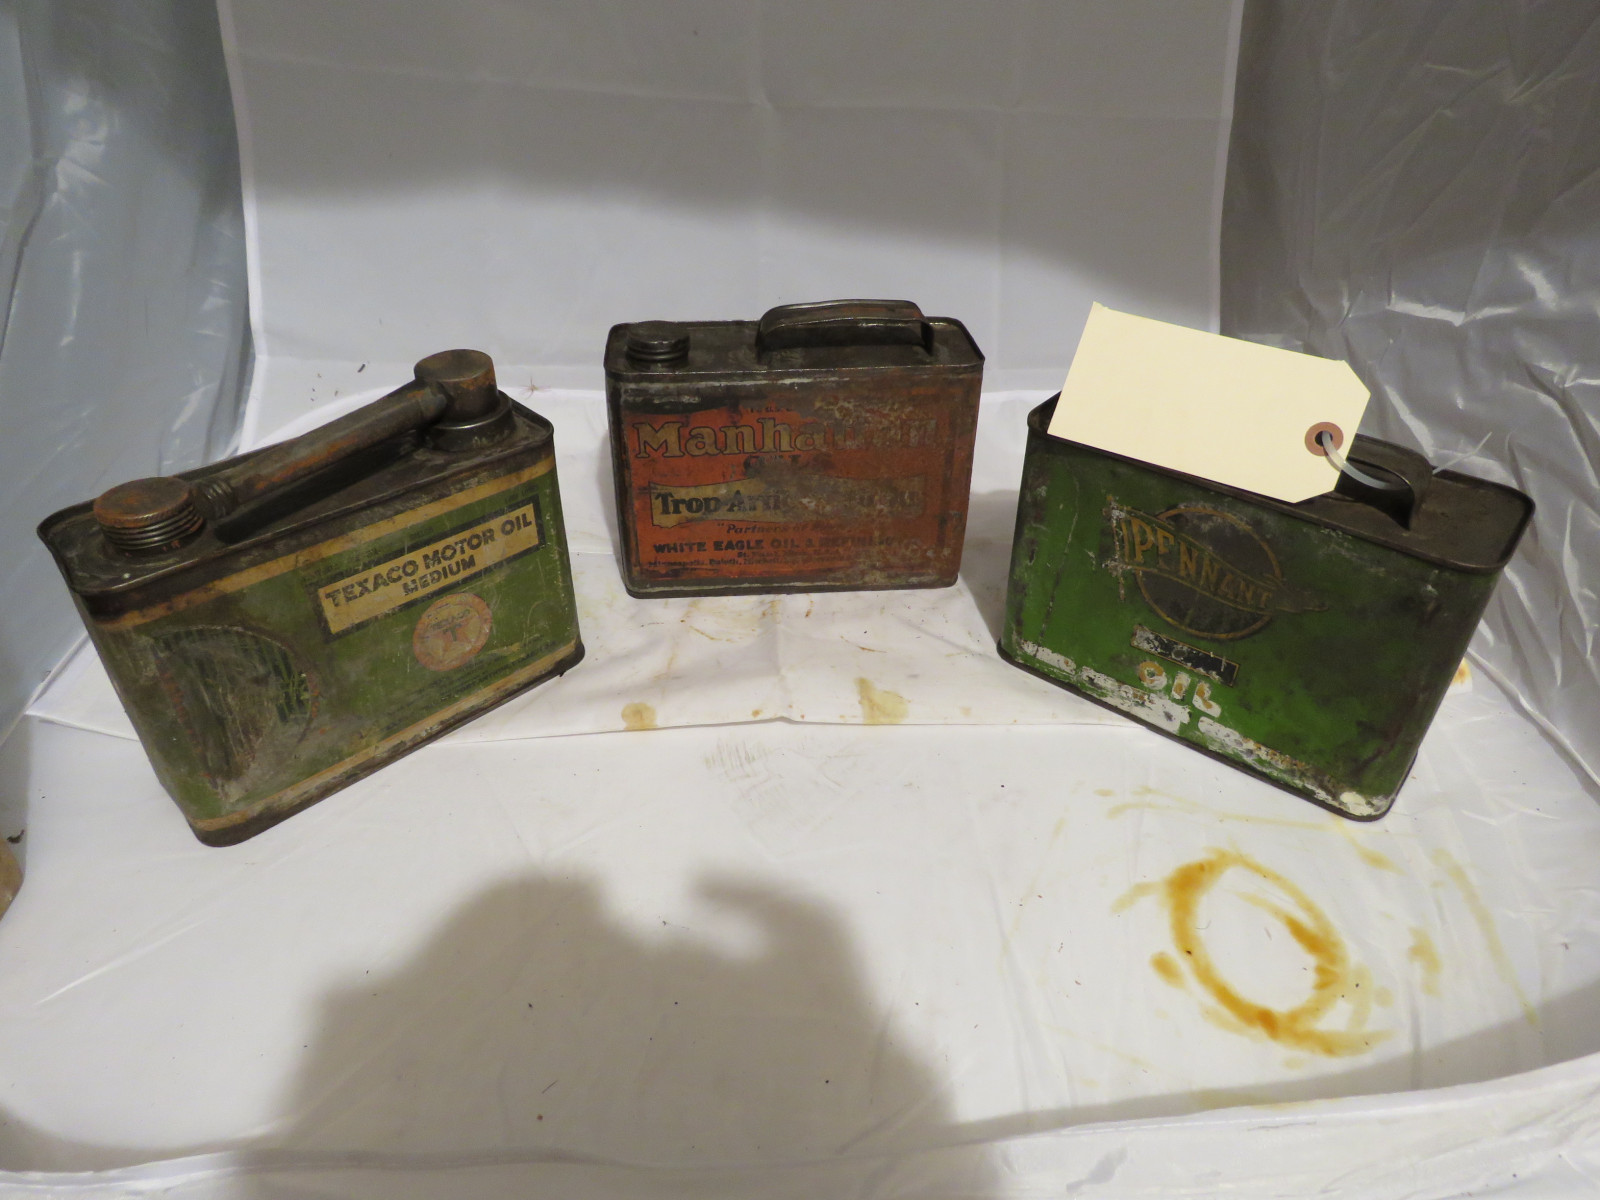 Vintage Oil Can Grouping - Image 5